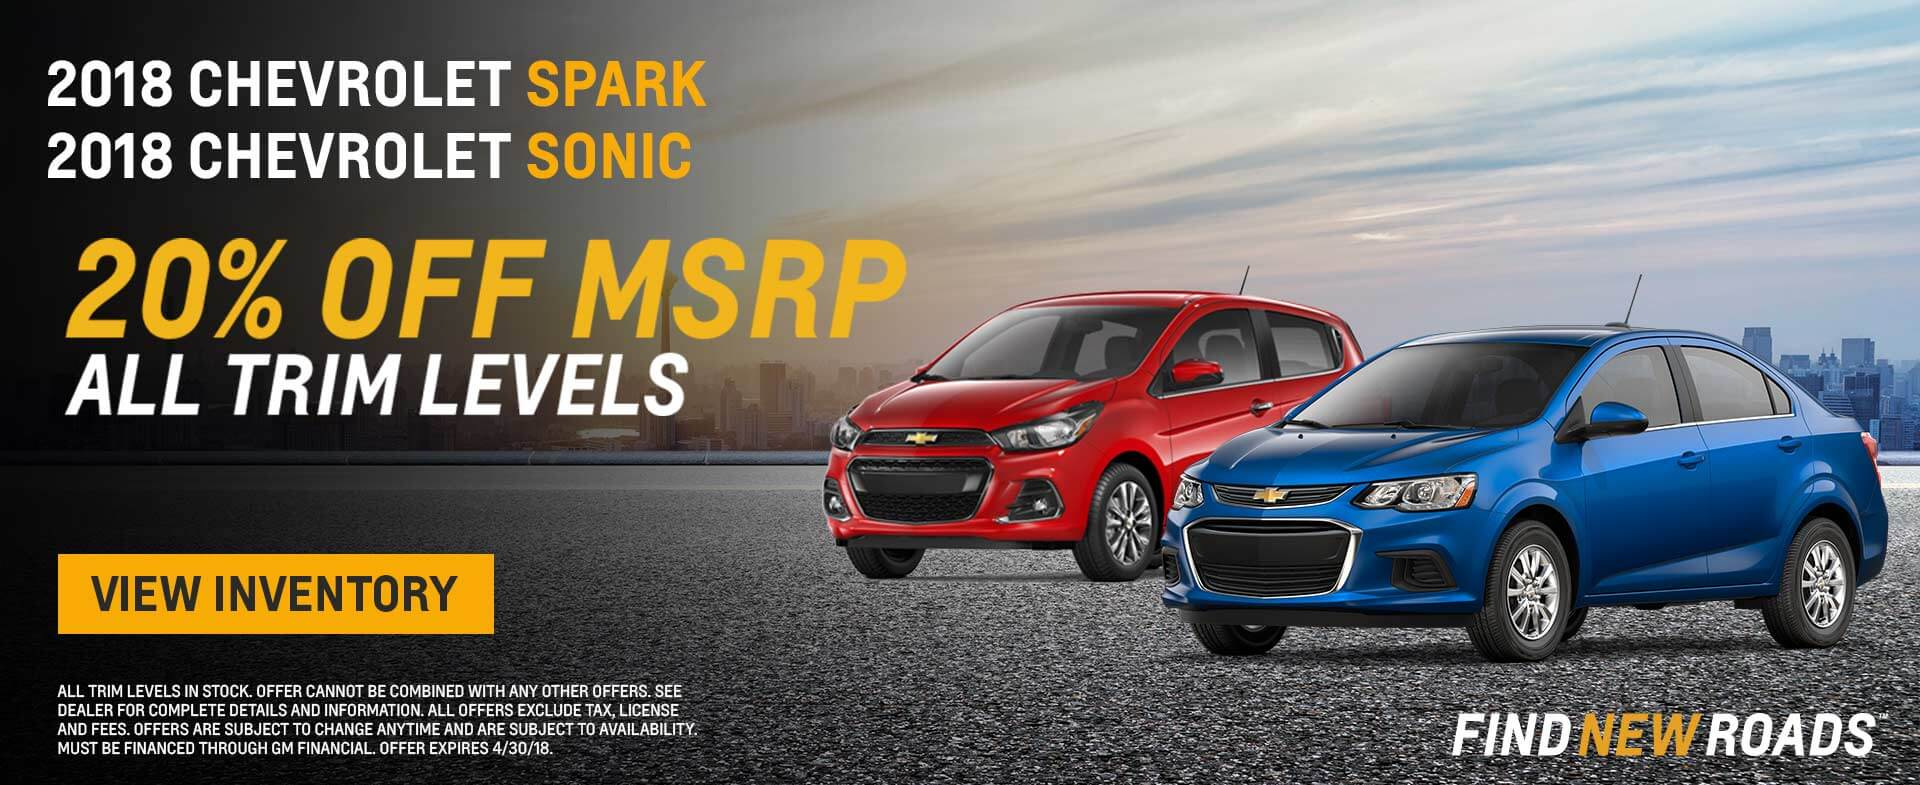 2018 Chevy Sonic Spark HP